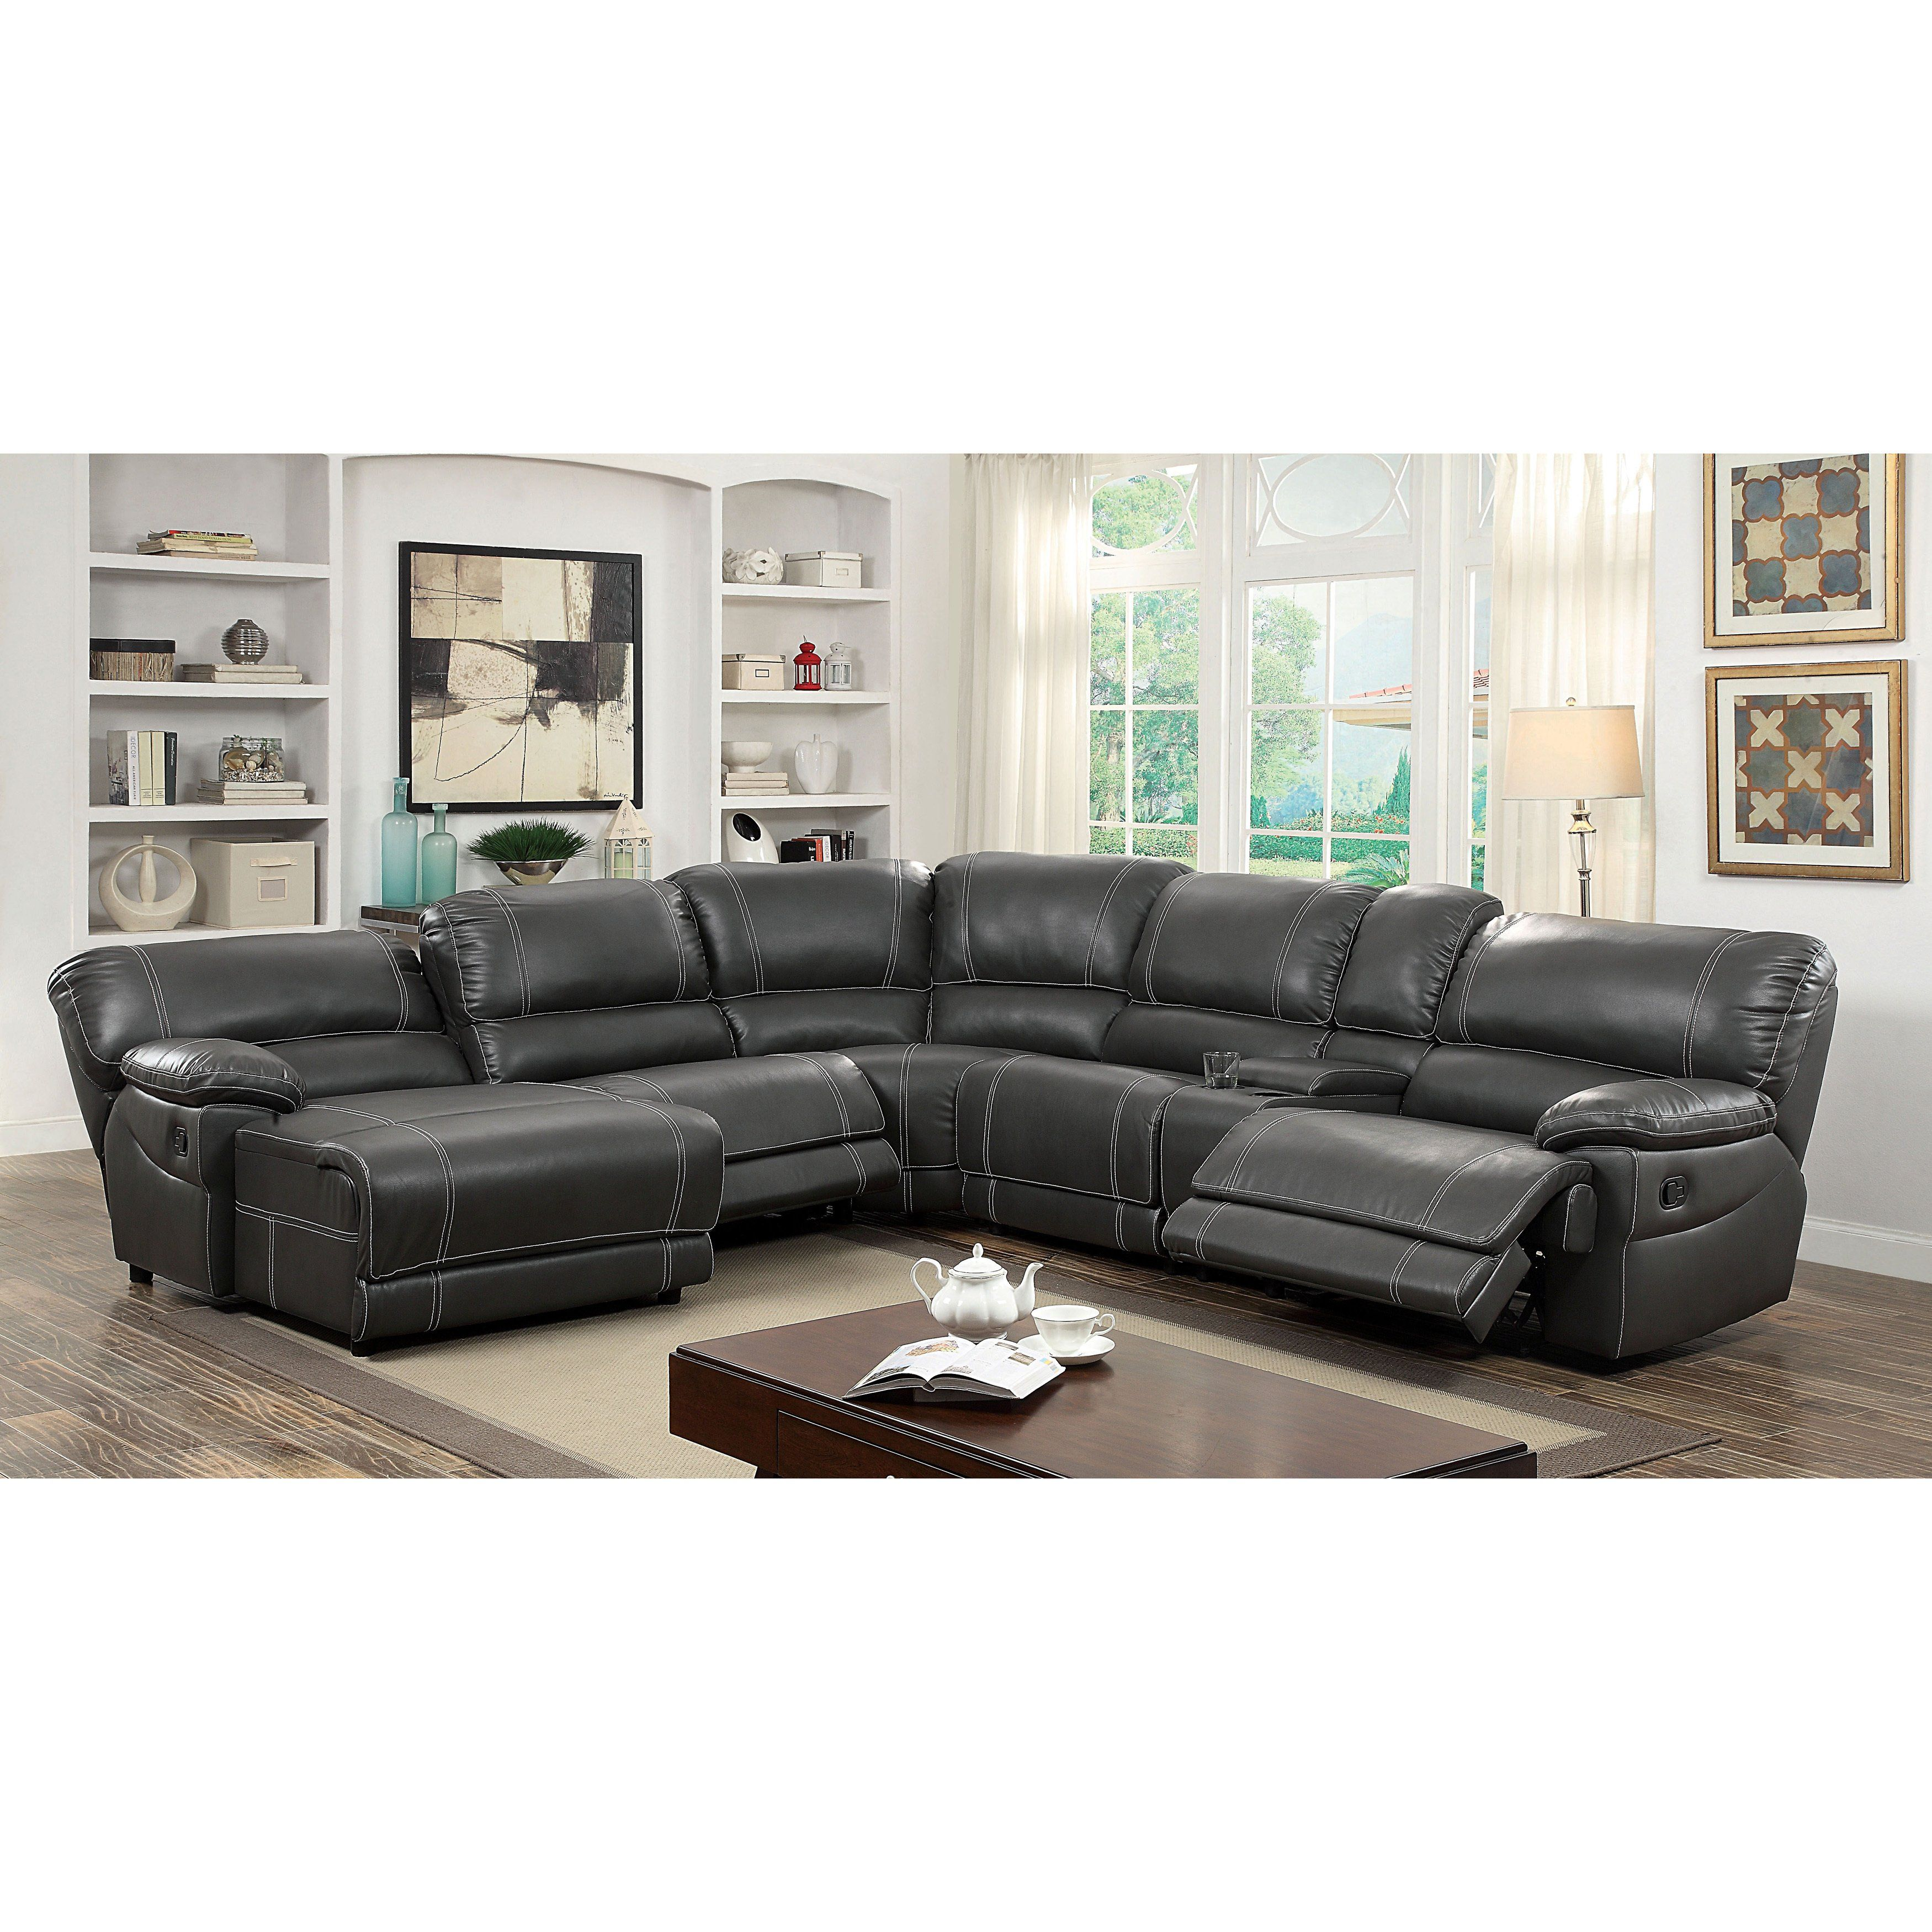 Brilliant Merson Contemporary 6 Piece Sectional By Foa Grey Caraccident5 Cool Chair Designs And Ideas Caraccident5Info